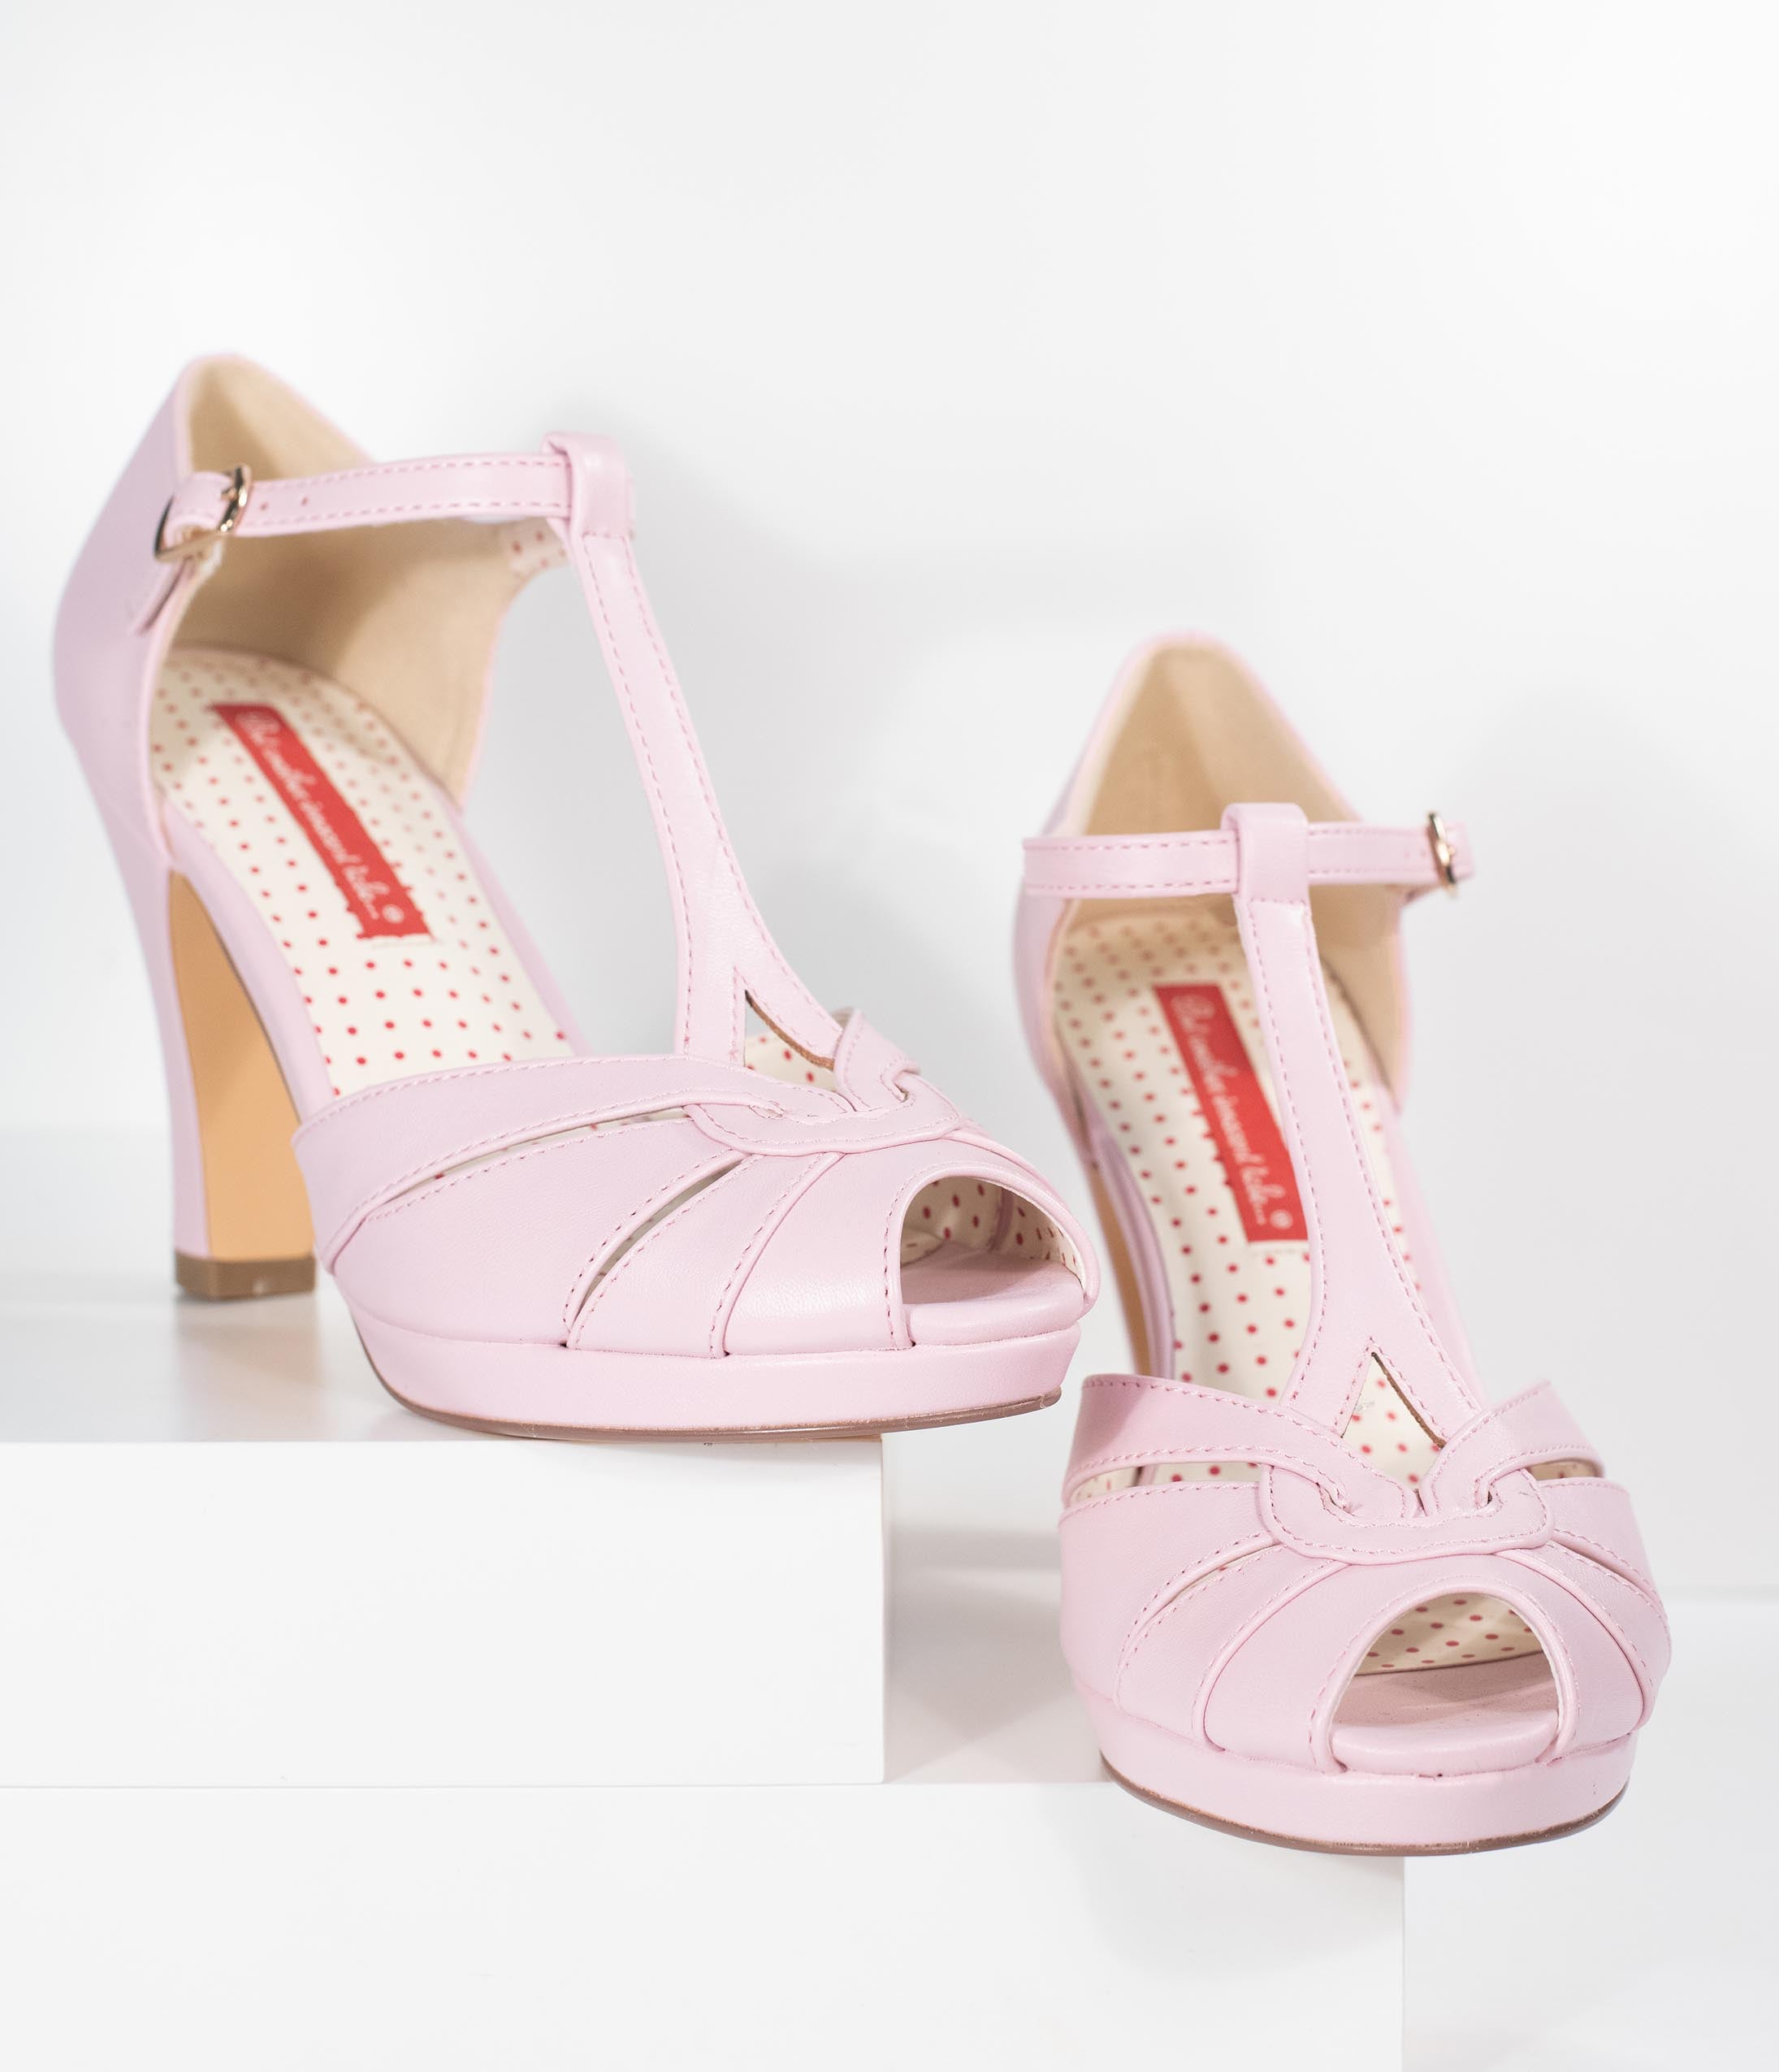 1950s Style Shoes | Heels, Flats, Saddle Shoes B.a.i.t. Pale Pink Leatherette Peep Toe T-Strap Lacey Heels $76.00 AT vintagedancer.com